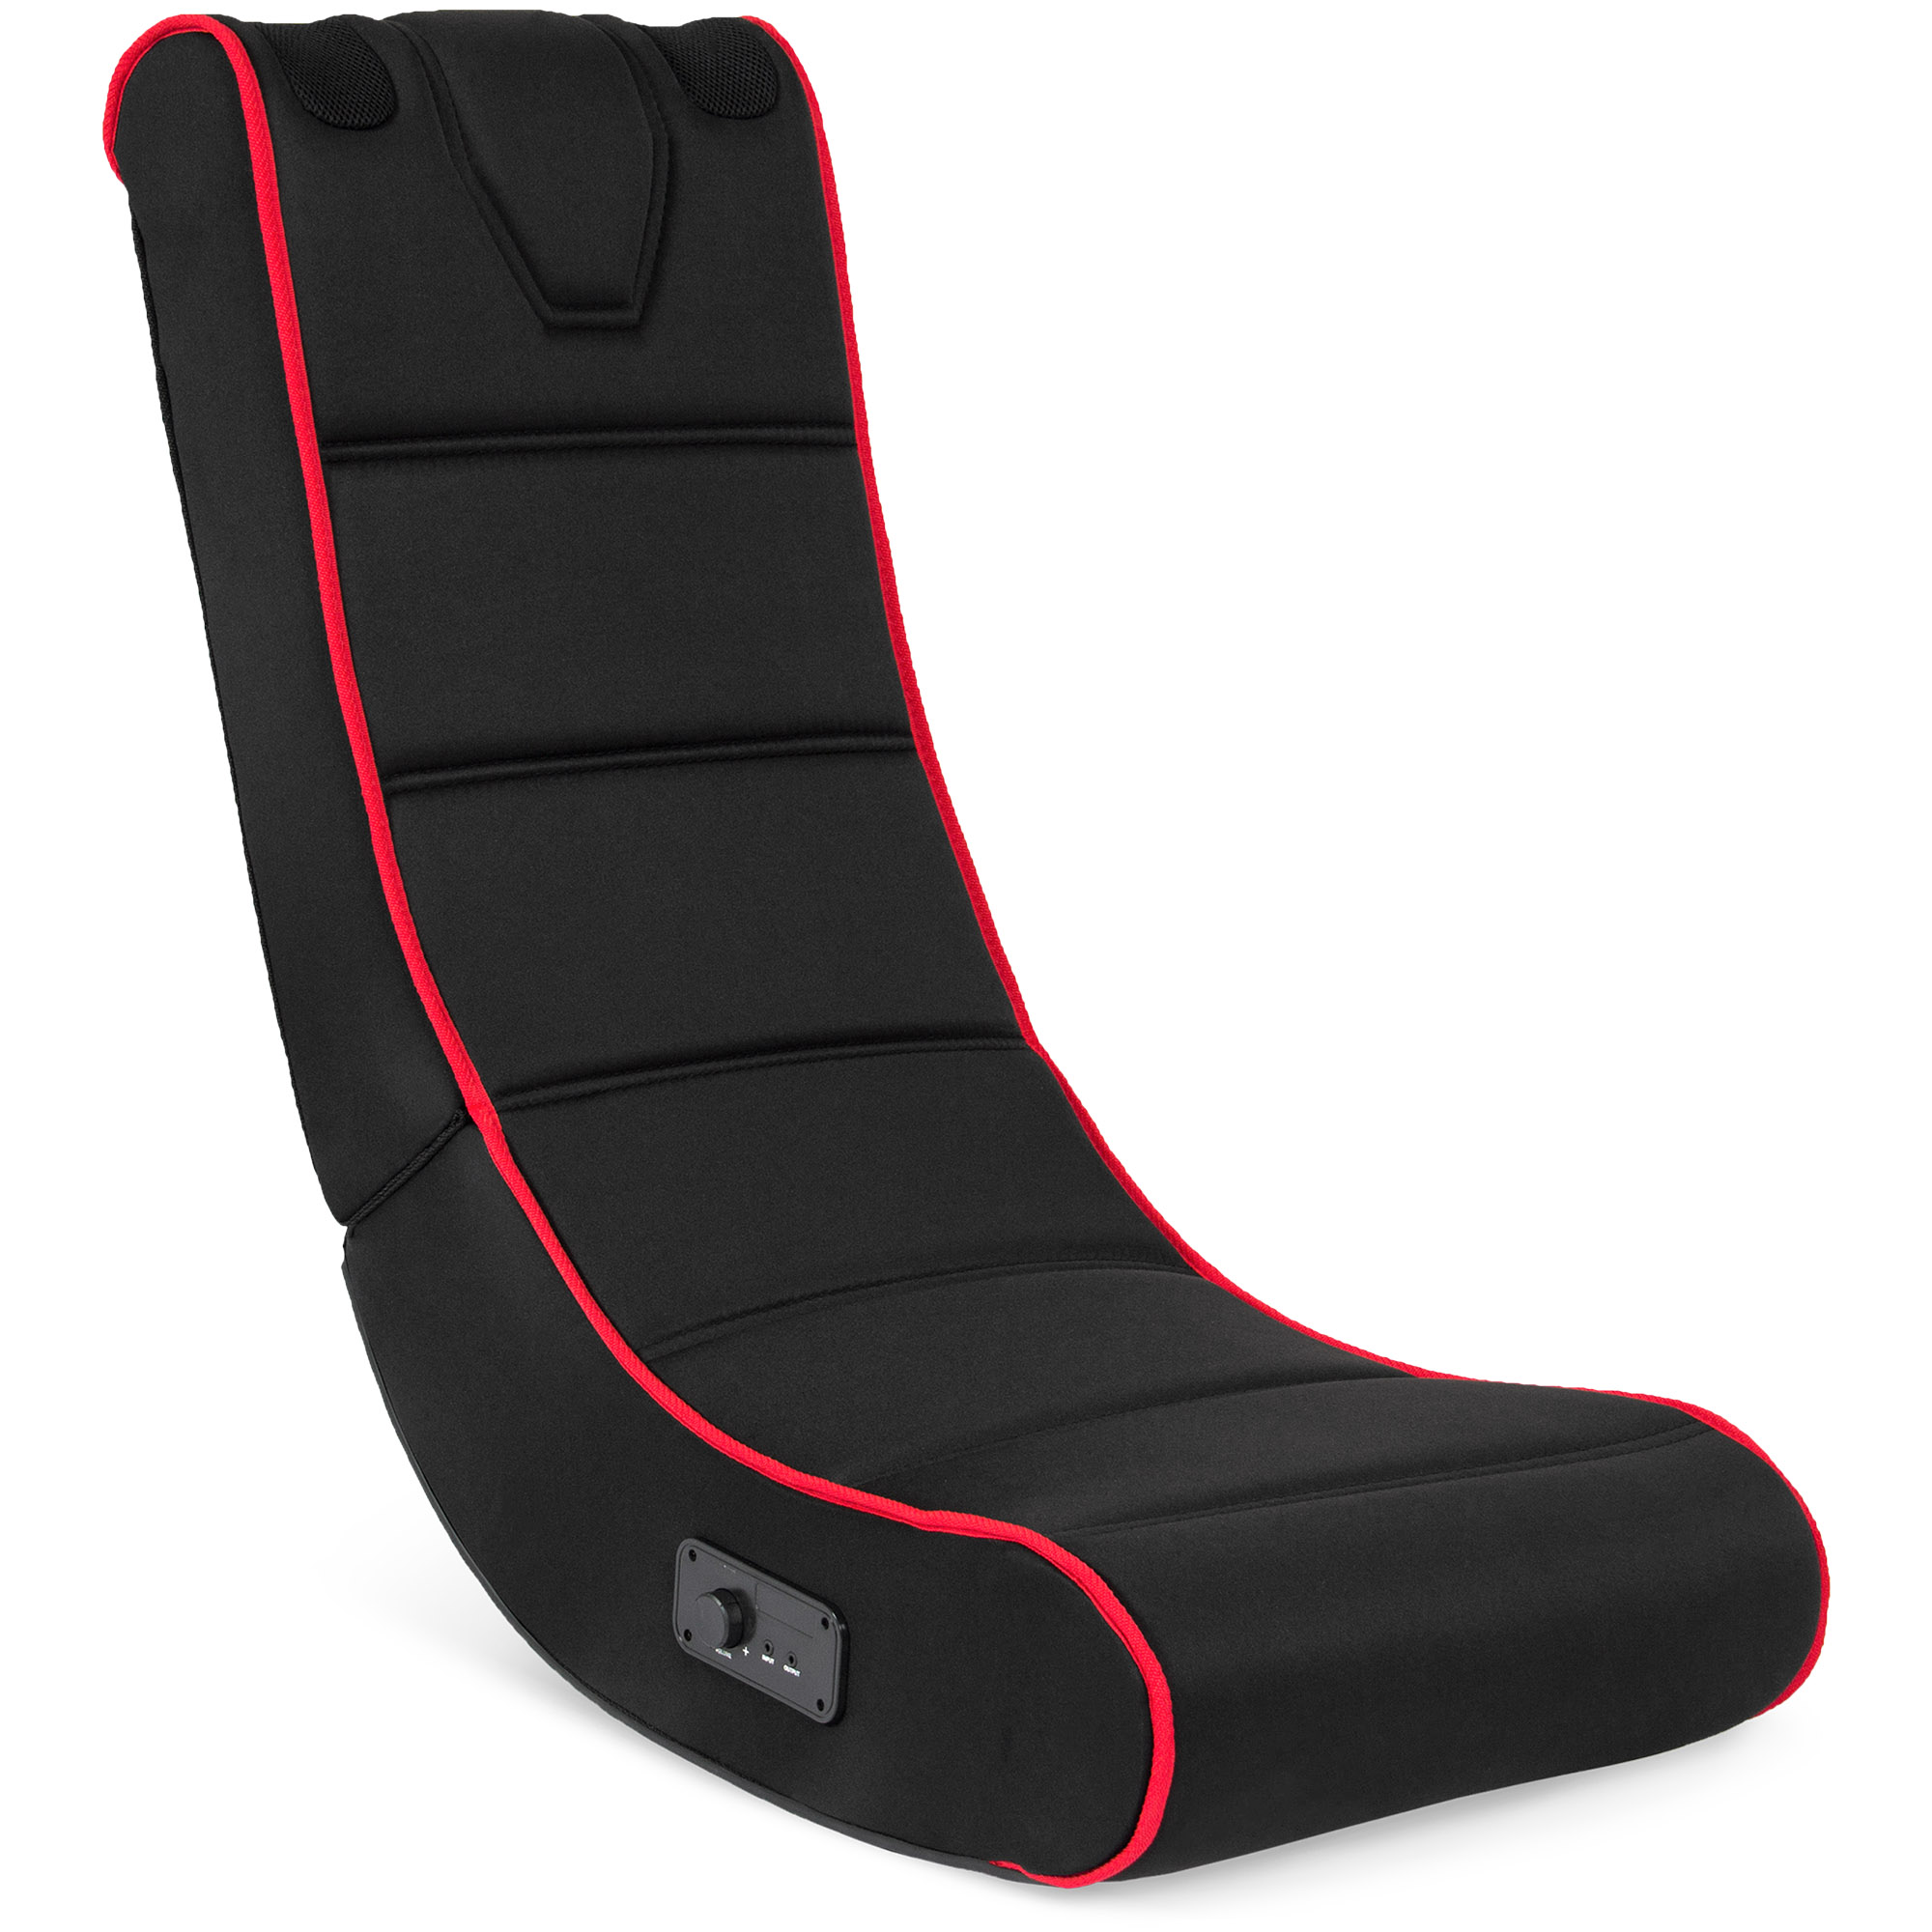 Best Choice Products Foldable Floor Gaming Chair w/ Audio Speakers System - Black/Red